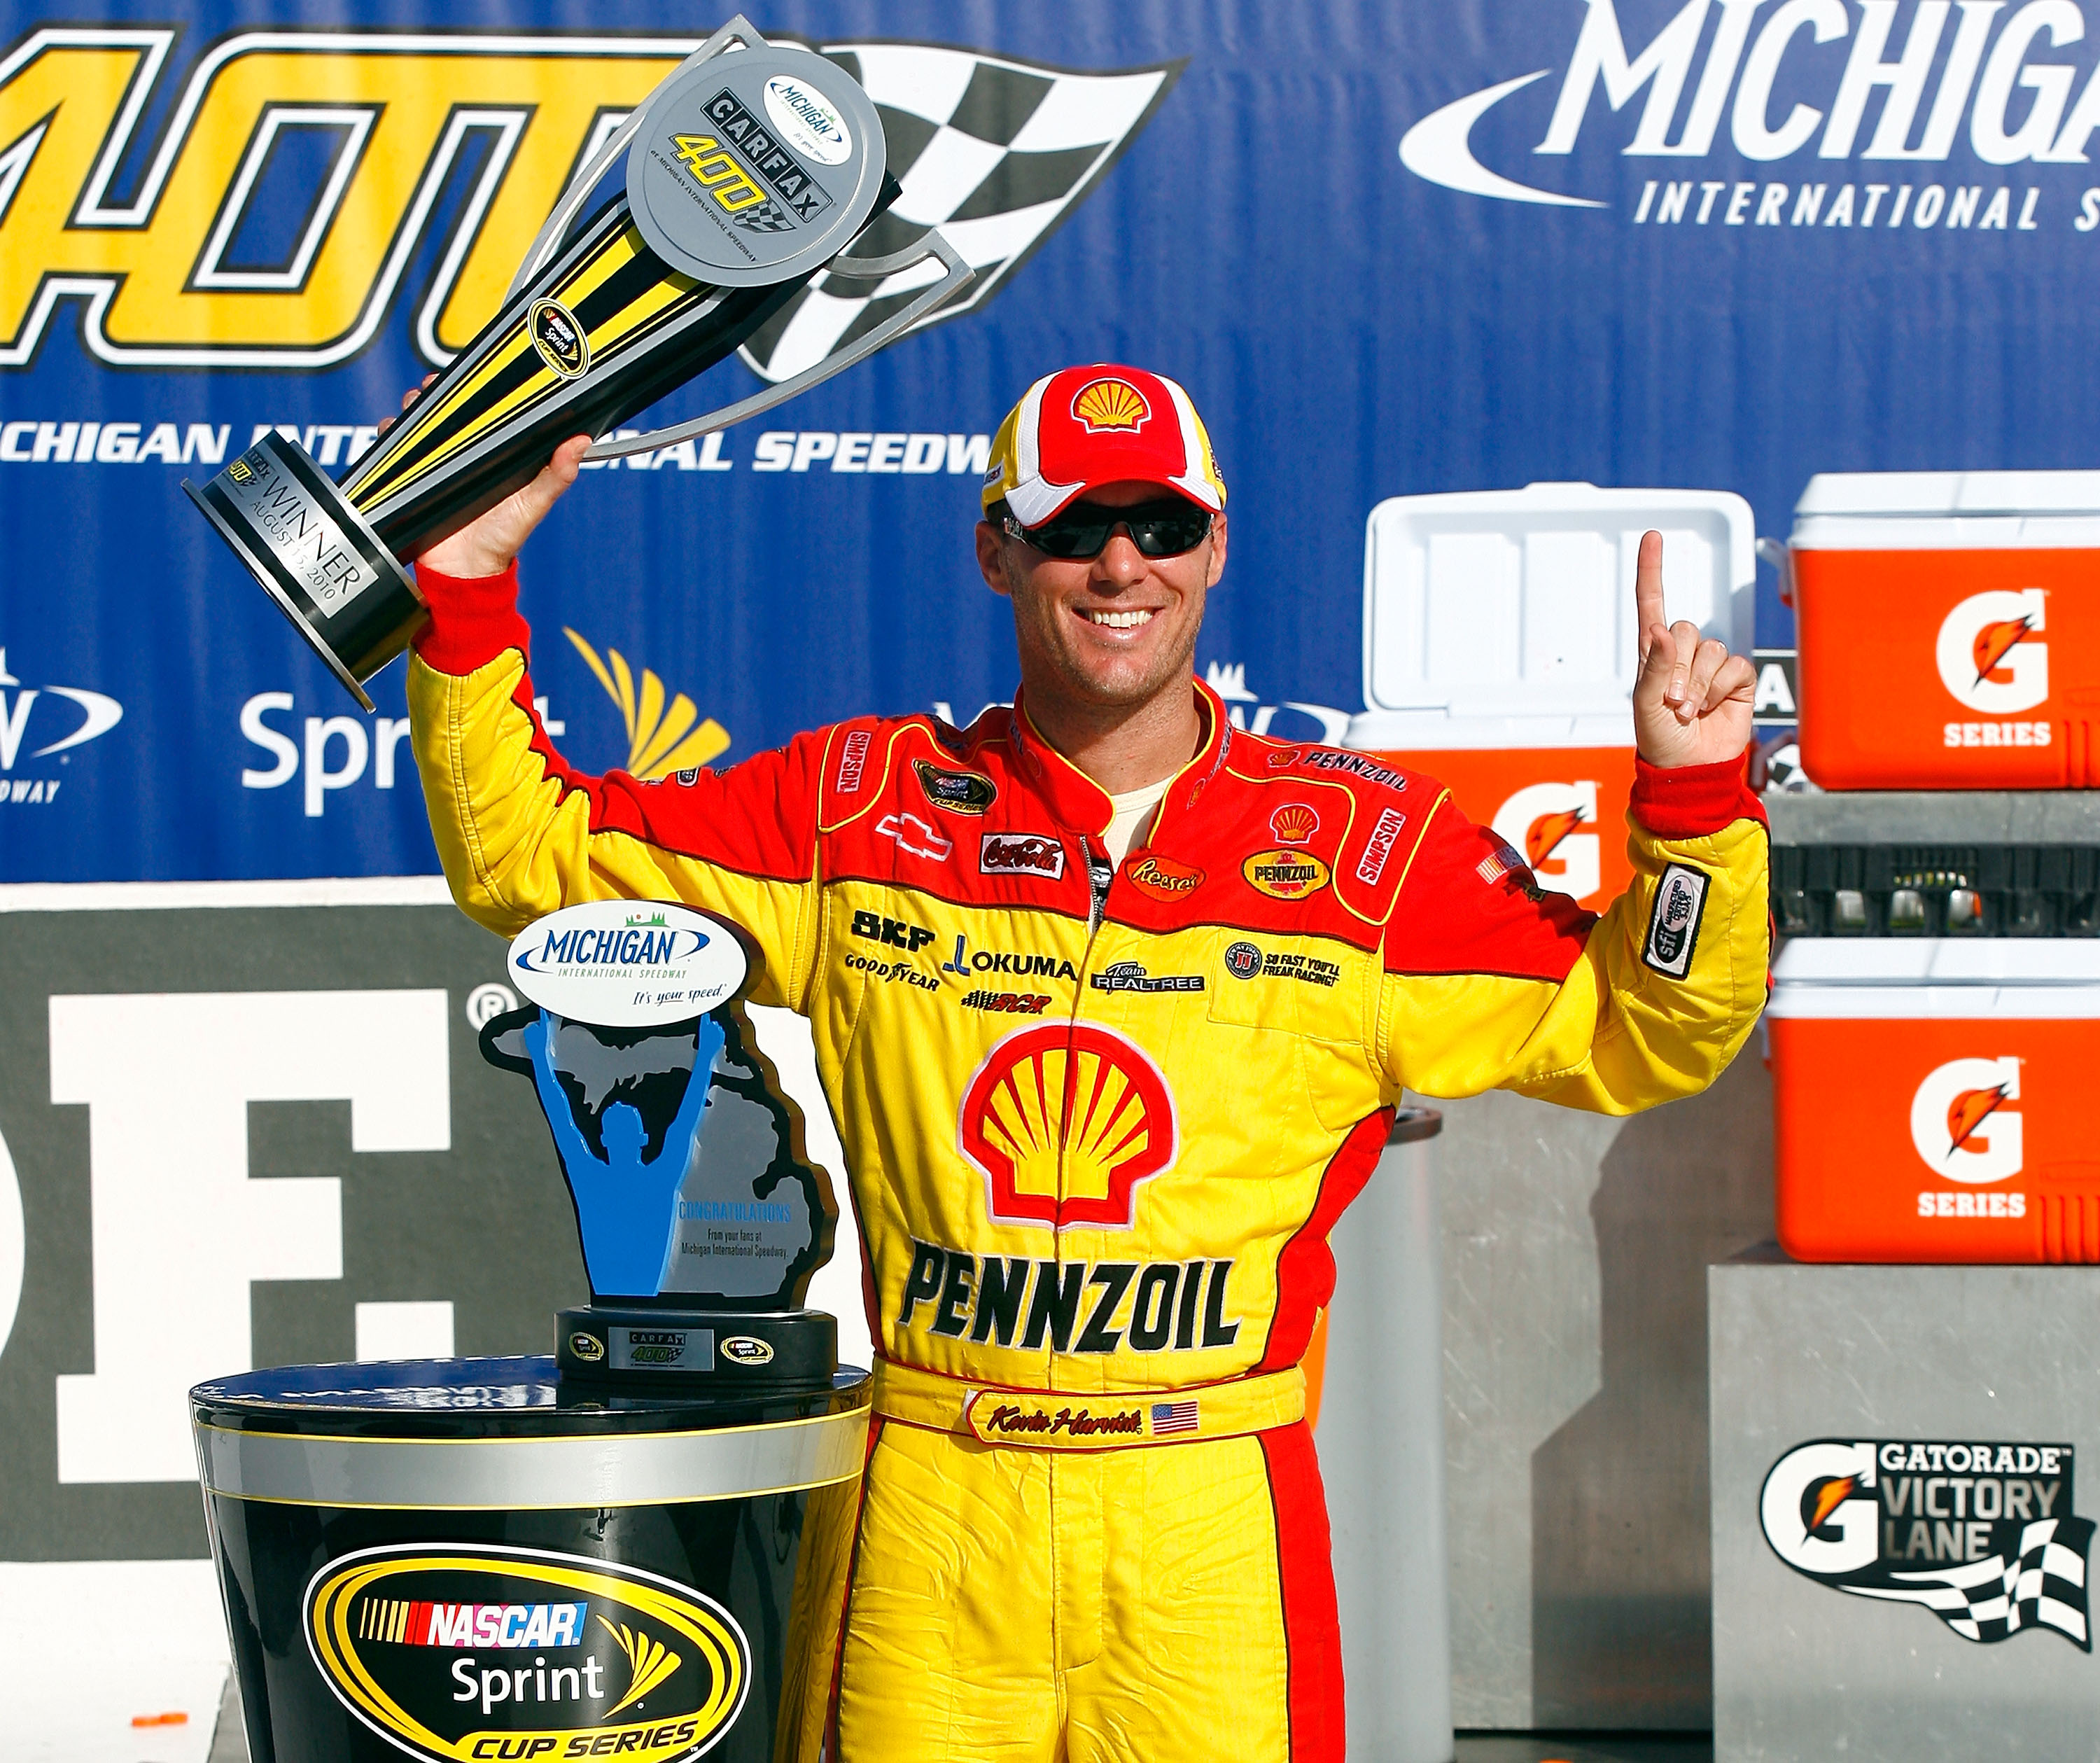 BROOKLYN, MI - AUGUST 15:  Kevin Harvick, driver of the #29 Shell/Pennzoil Chevrolet, celebrates with the trophy in victory lane after winning the NASCAR Sprint Cup Series CARFAX 400 at Michigan International Speedway on August 15, 2010 in Brooklyn, Michi